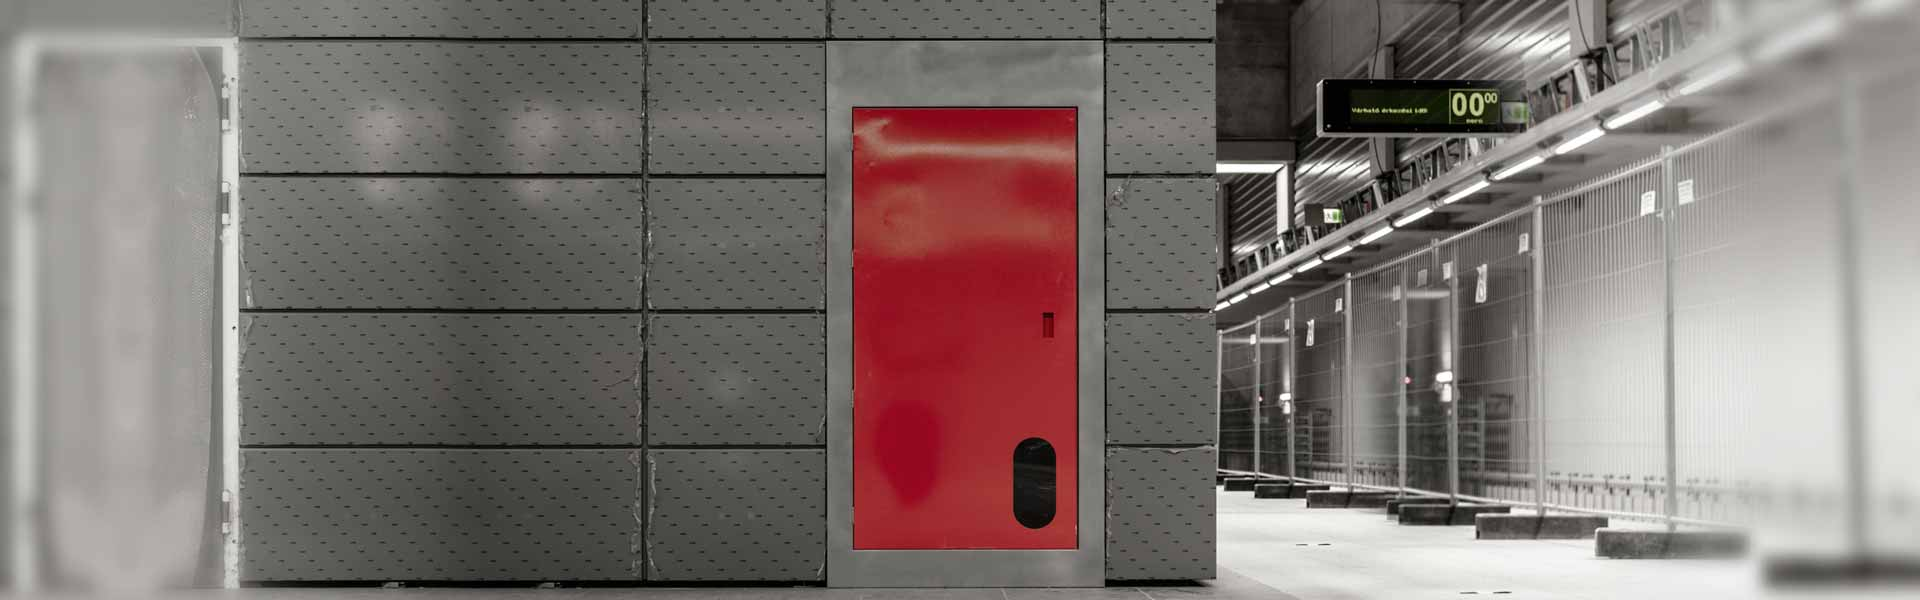 certified blast & ballistic doors and structures, for the protection of critical areas